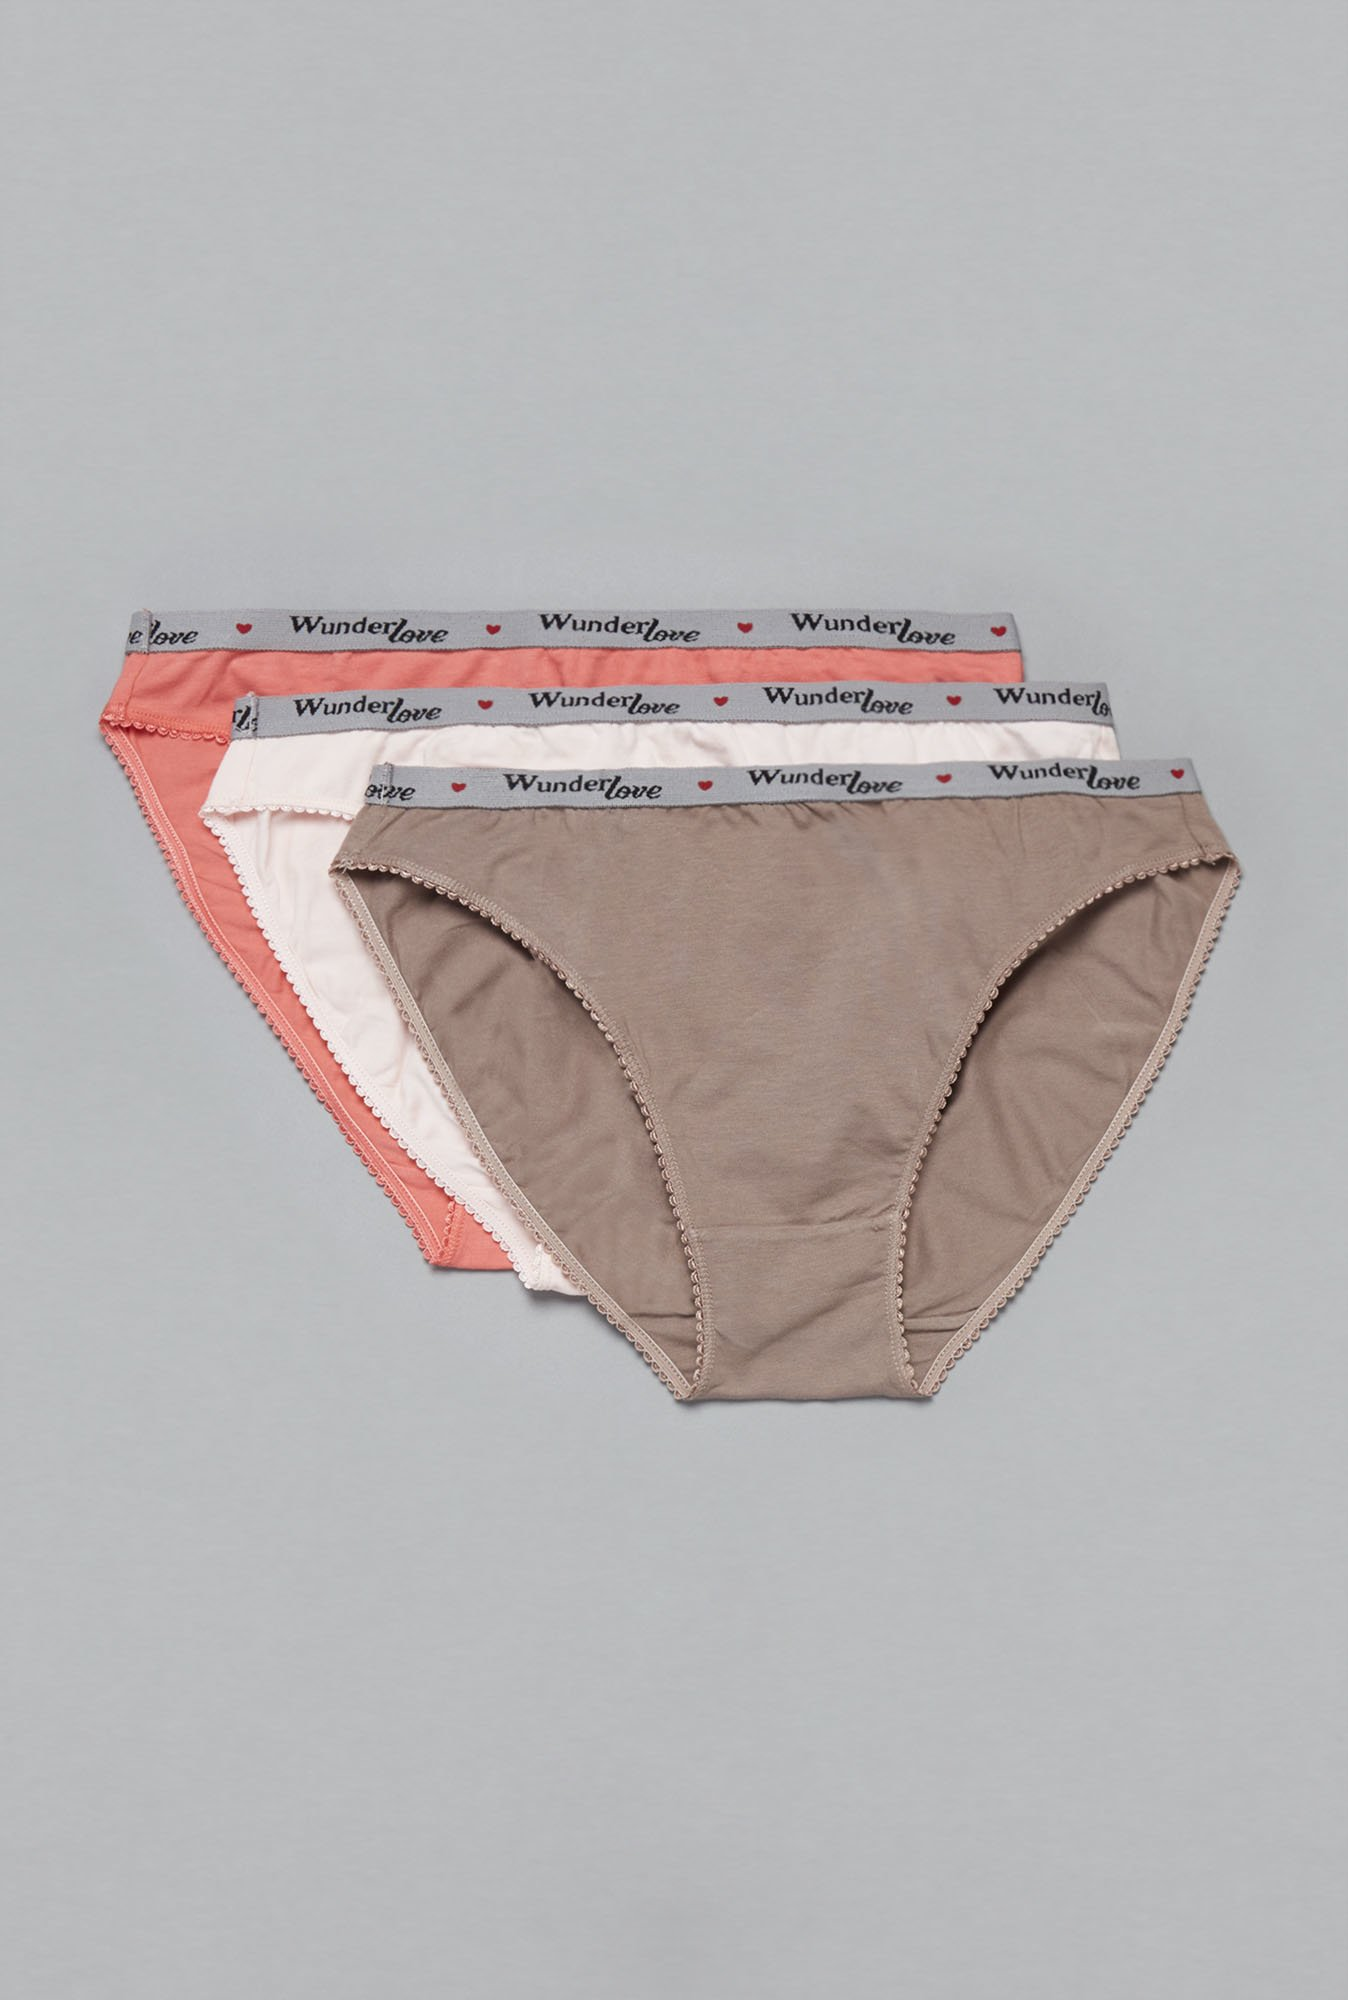 Wunderlove by Westside Taupe, Cream, Coral Brief (Pack Of 3)